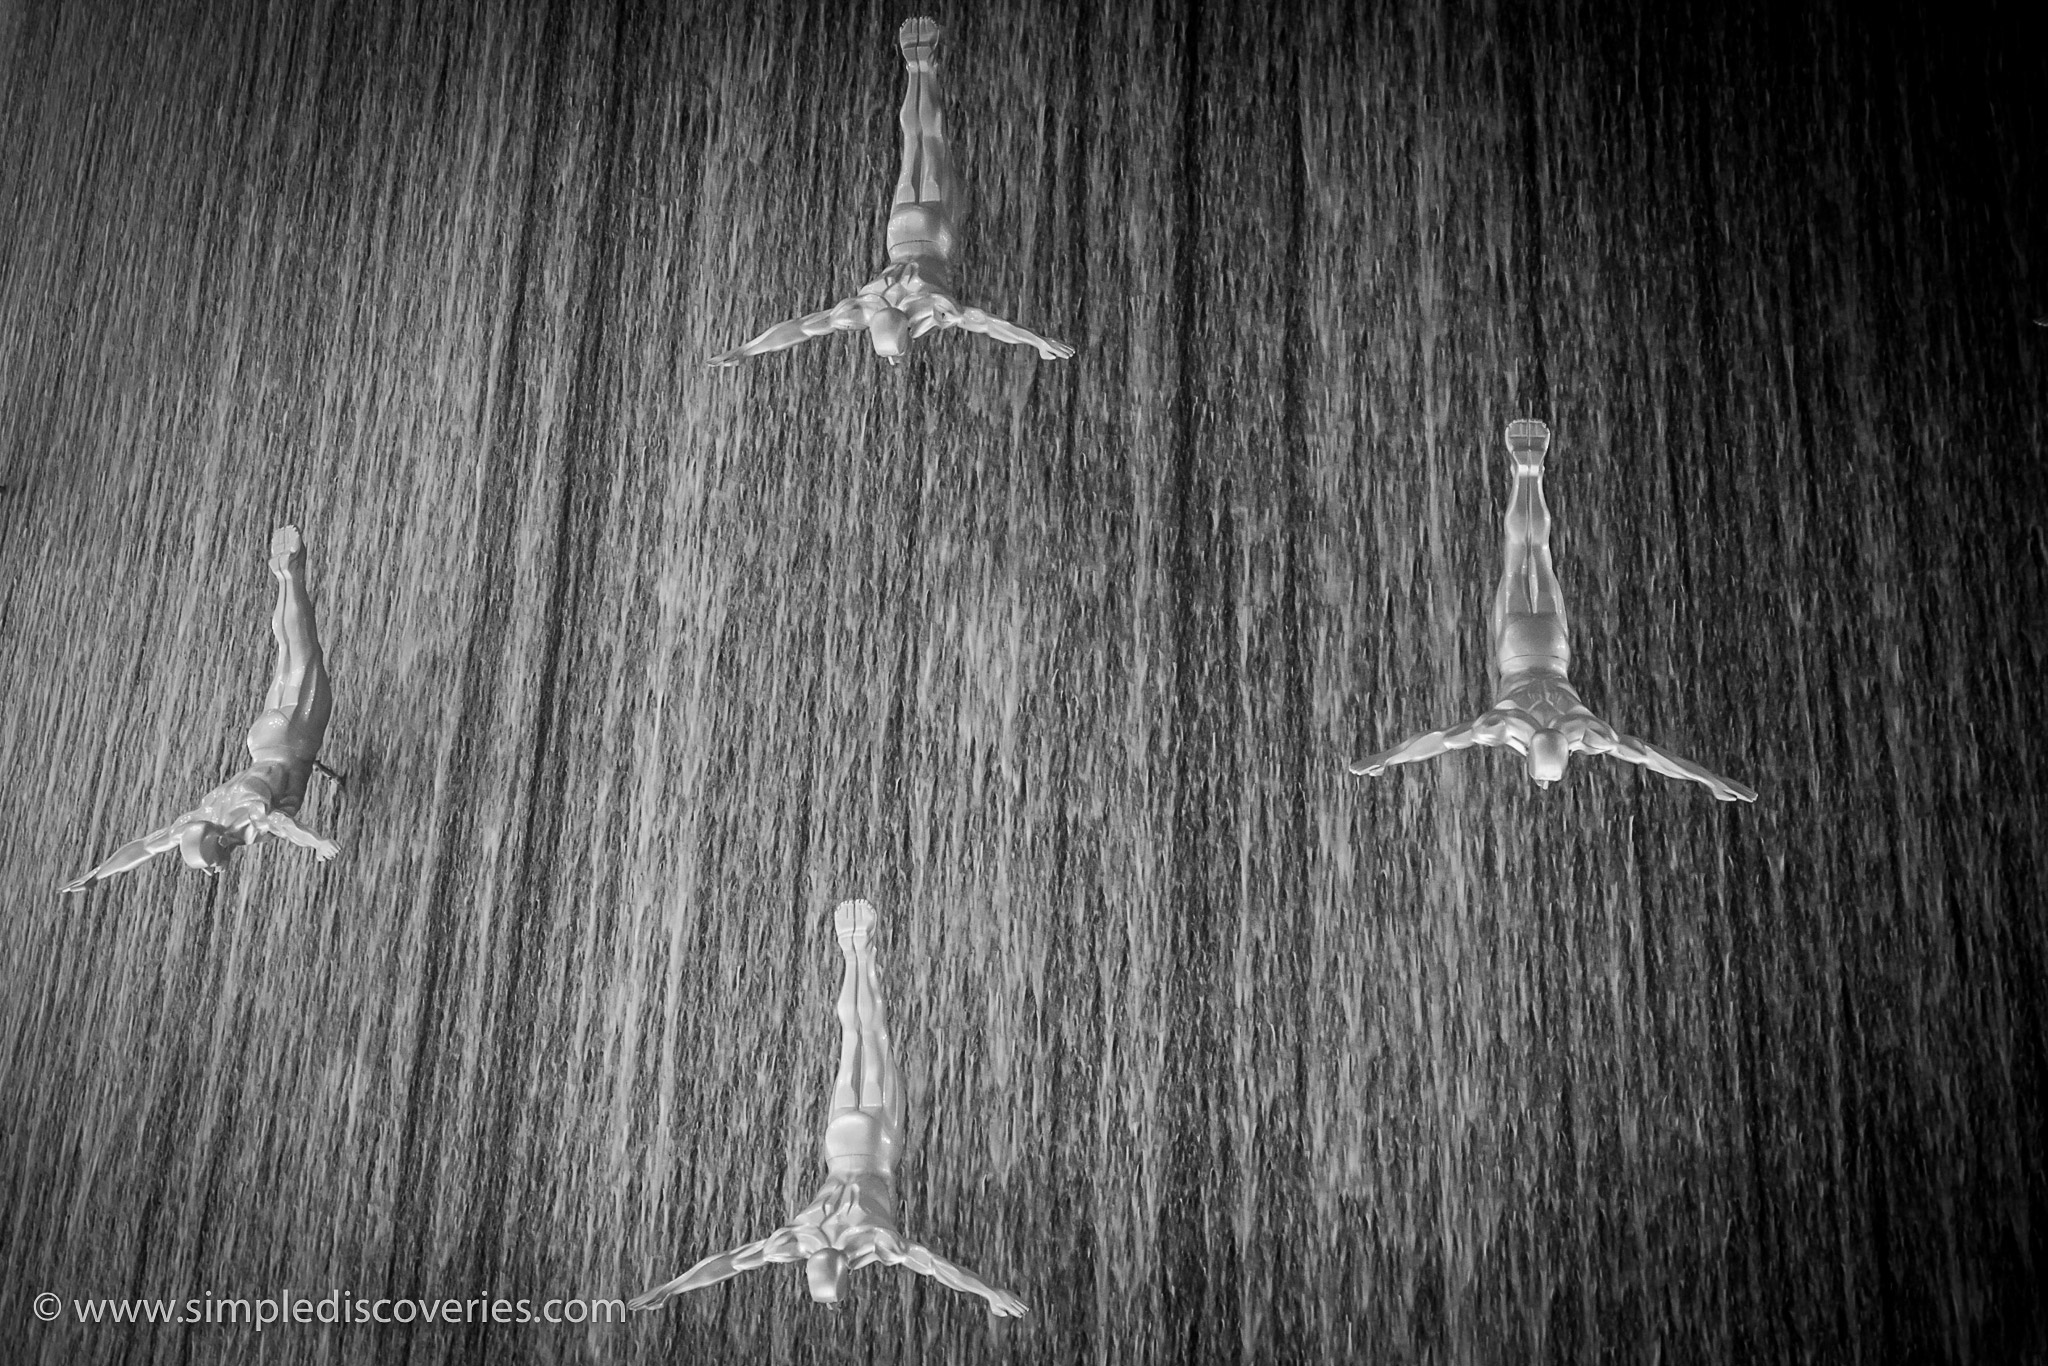 dubai_mall_divers